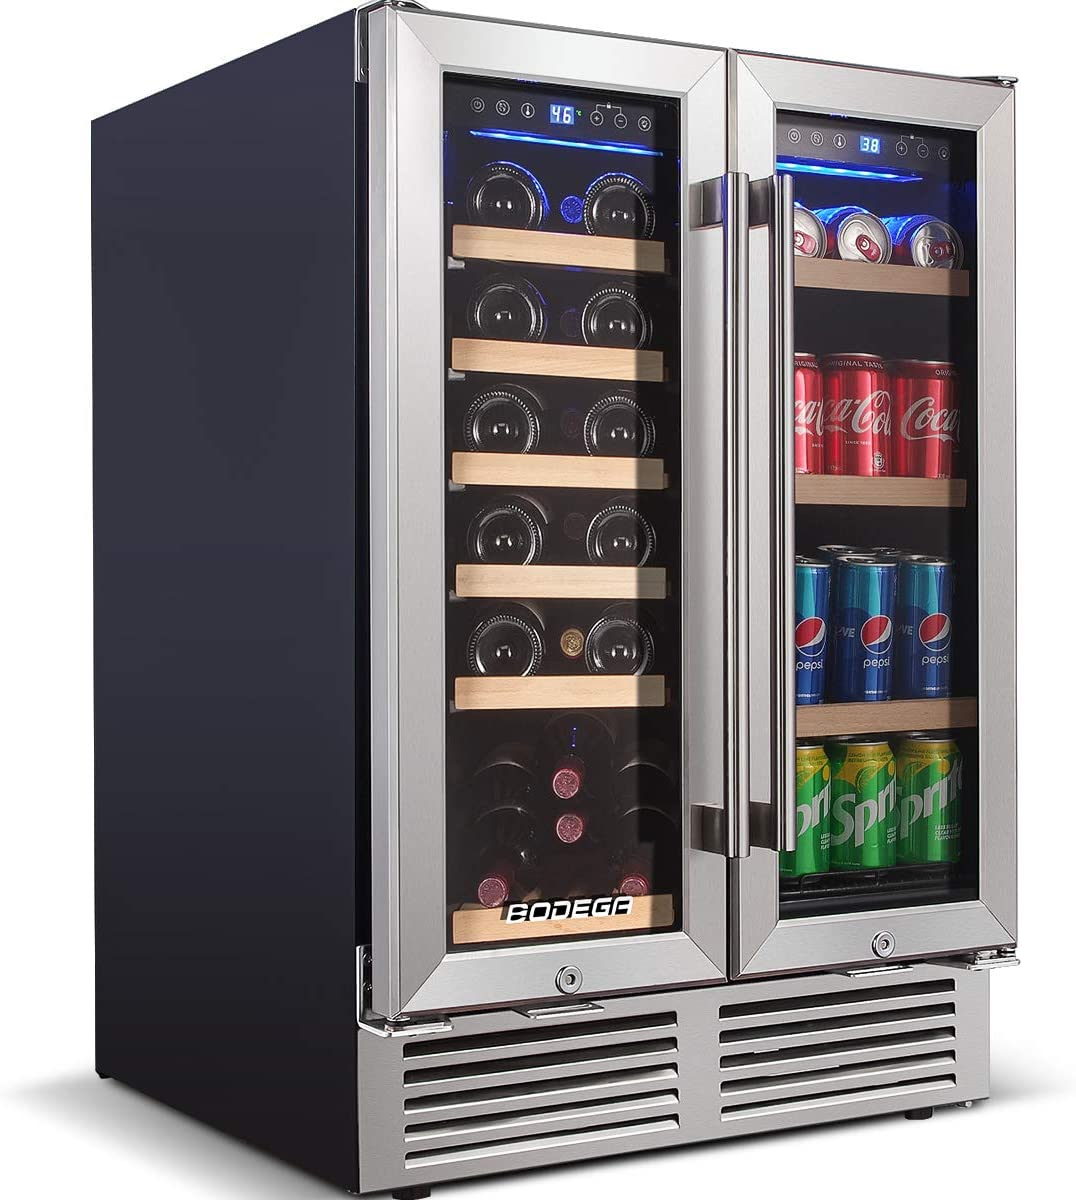 BODEGA 24 Inch Dual Zone Wine and Beverage Refrigerator,Built-In or Freestanding installation,2-IN-1 Independent Memory Temperature Control,Soft LED Light,Low energy,Hold 19 Bottles and 57 Cans